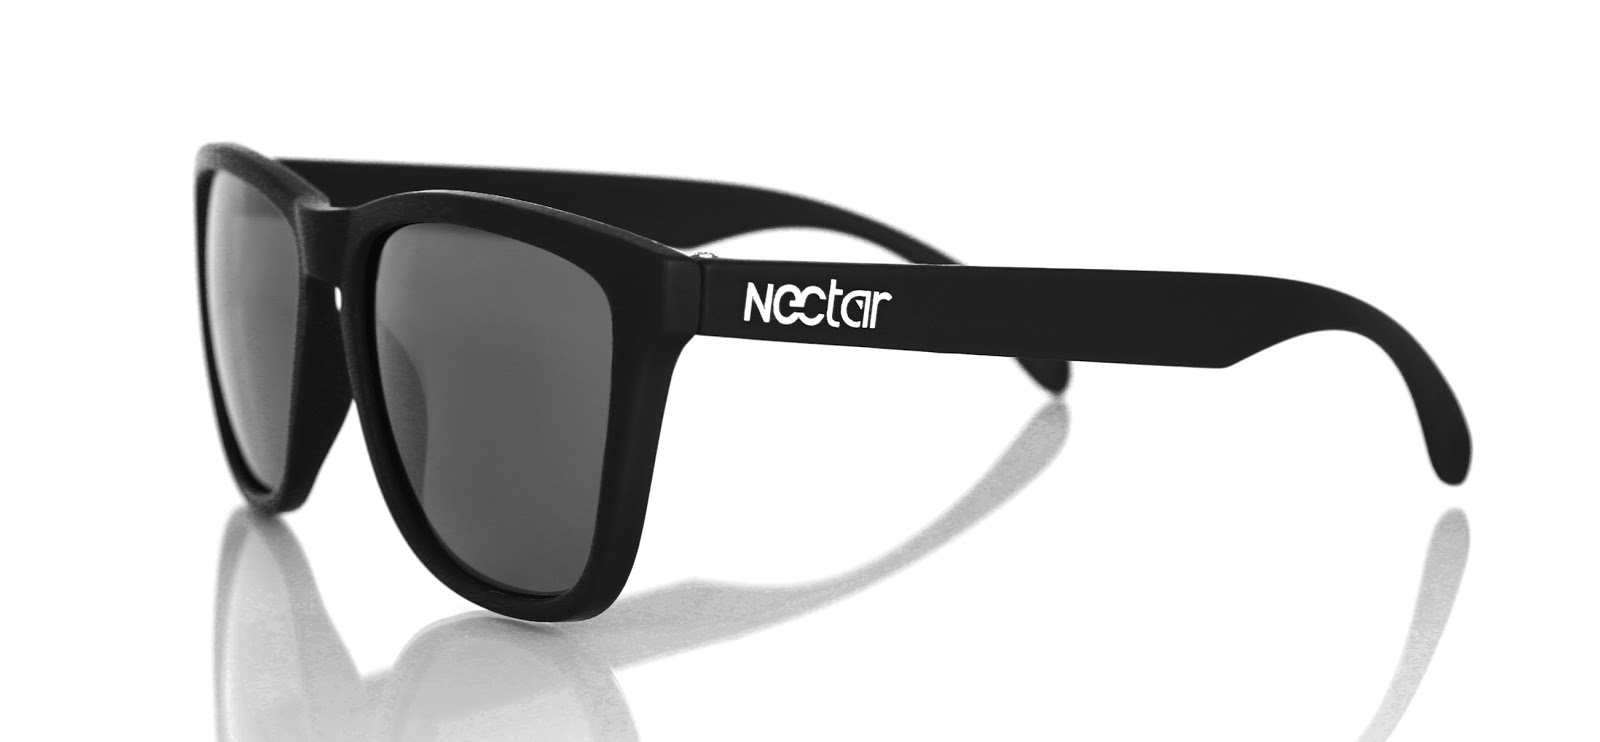 83f886fd6ab Coltic is the classic pair of Nectar Sunglasses. Timeless style and awesome  shades